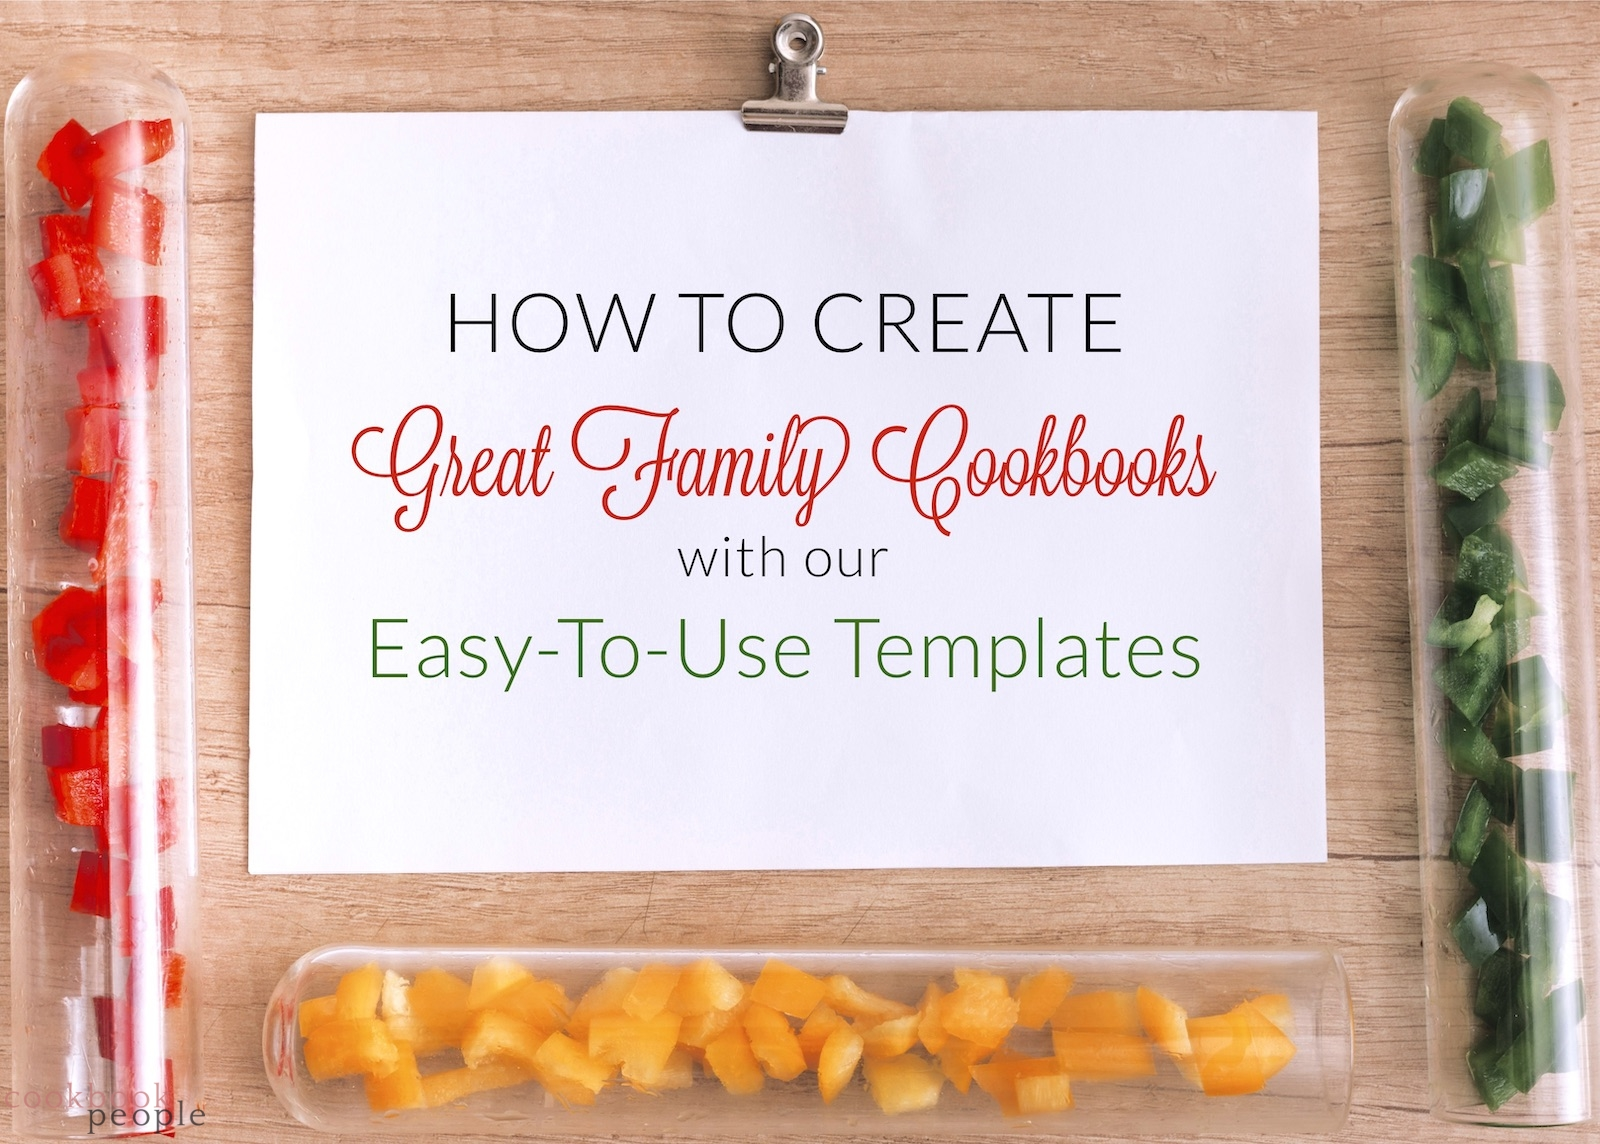 Glass tubes containing chopped peppers surrounding paper with text: How to Create Great Family Cookbooks with Our Easy-To-Use Templates